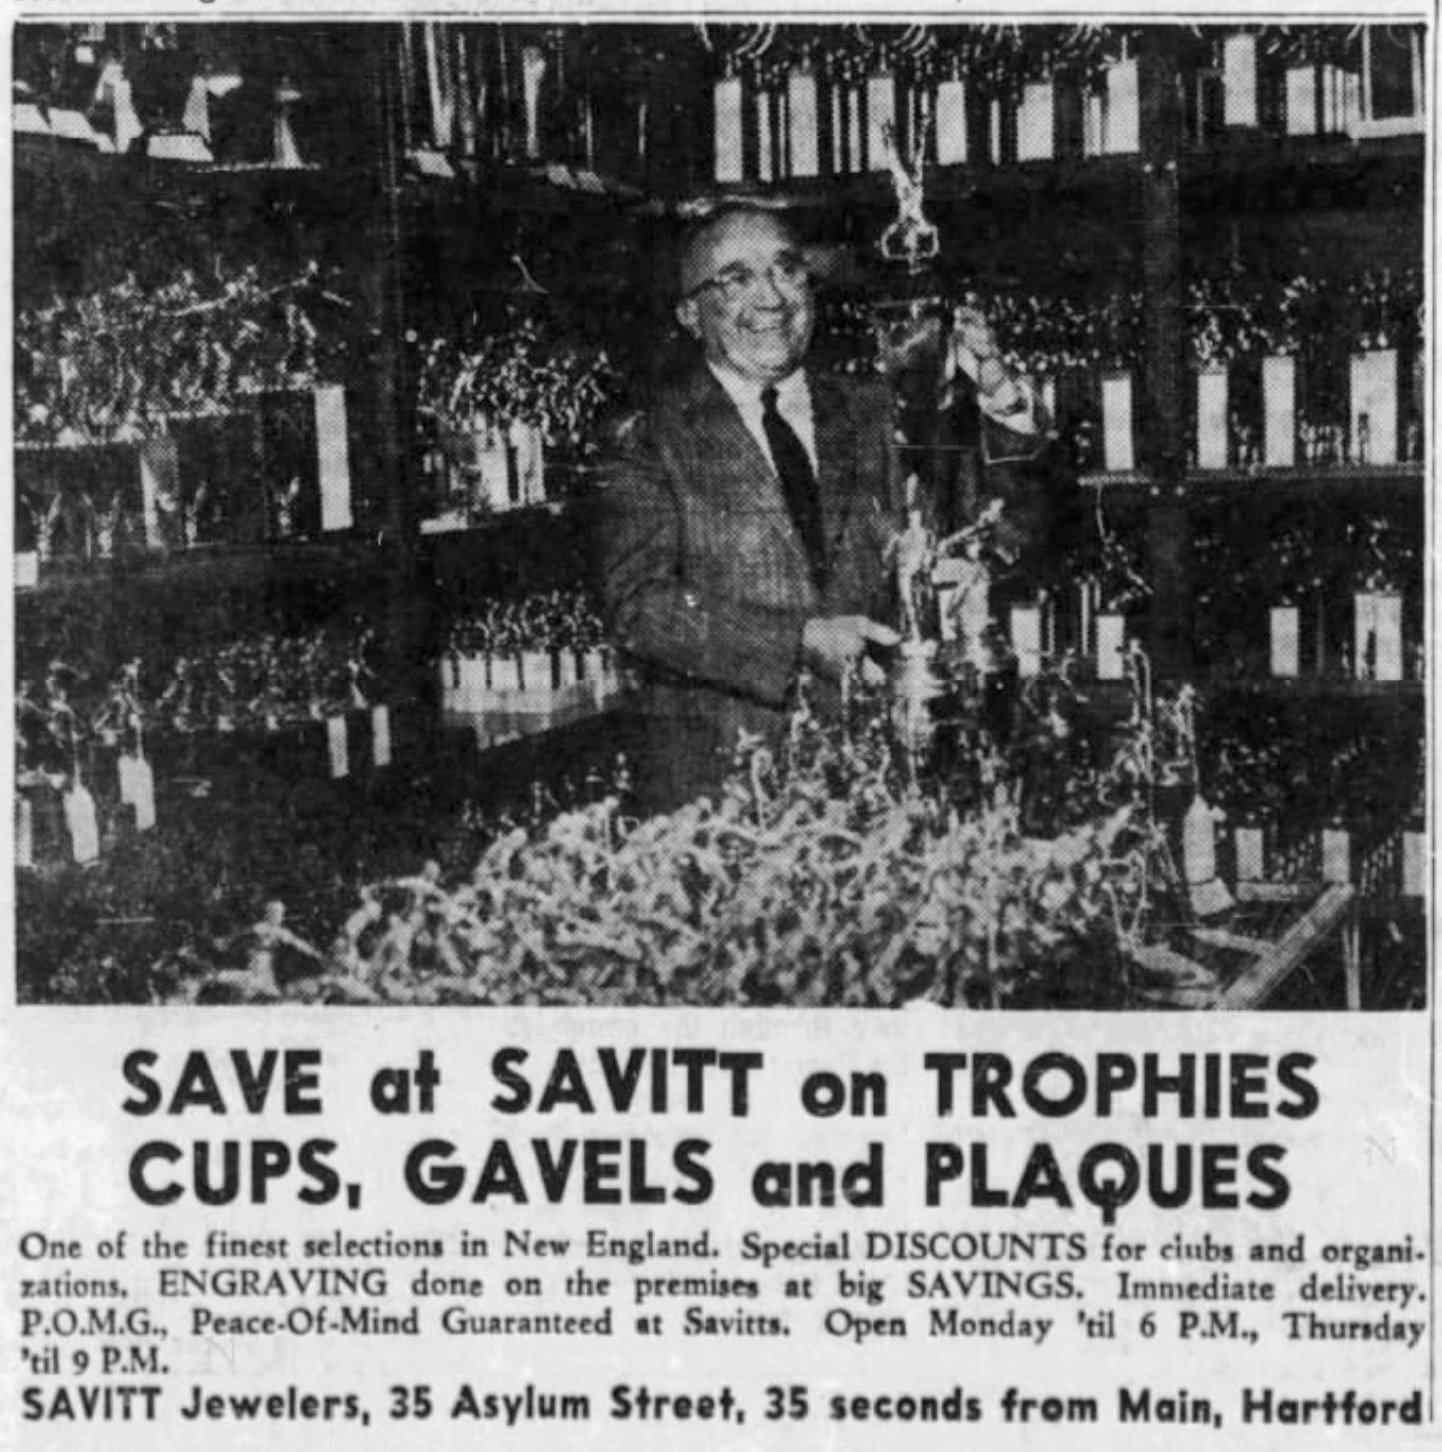 Bill Savitt, Savitt Jewelers, 1965.